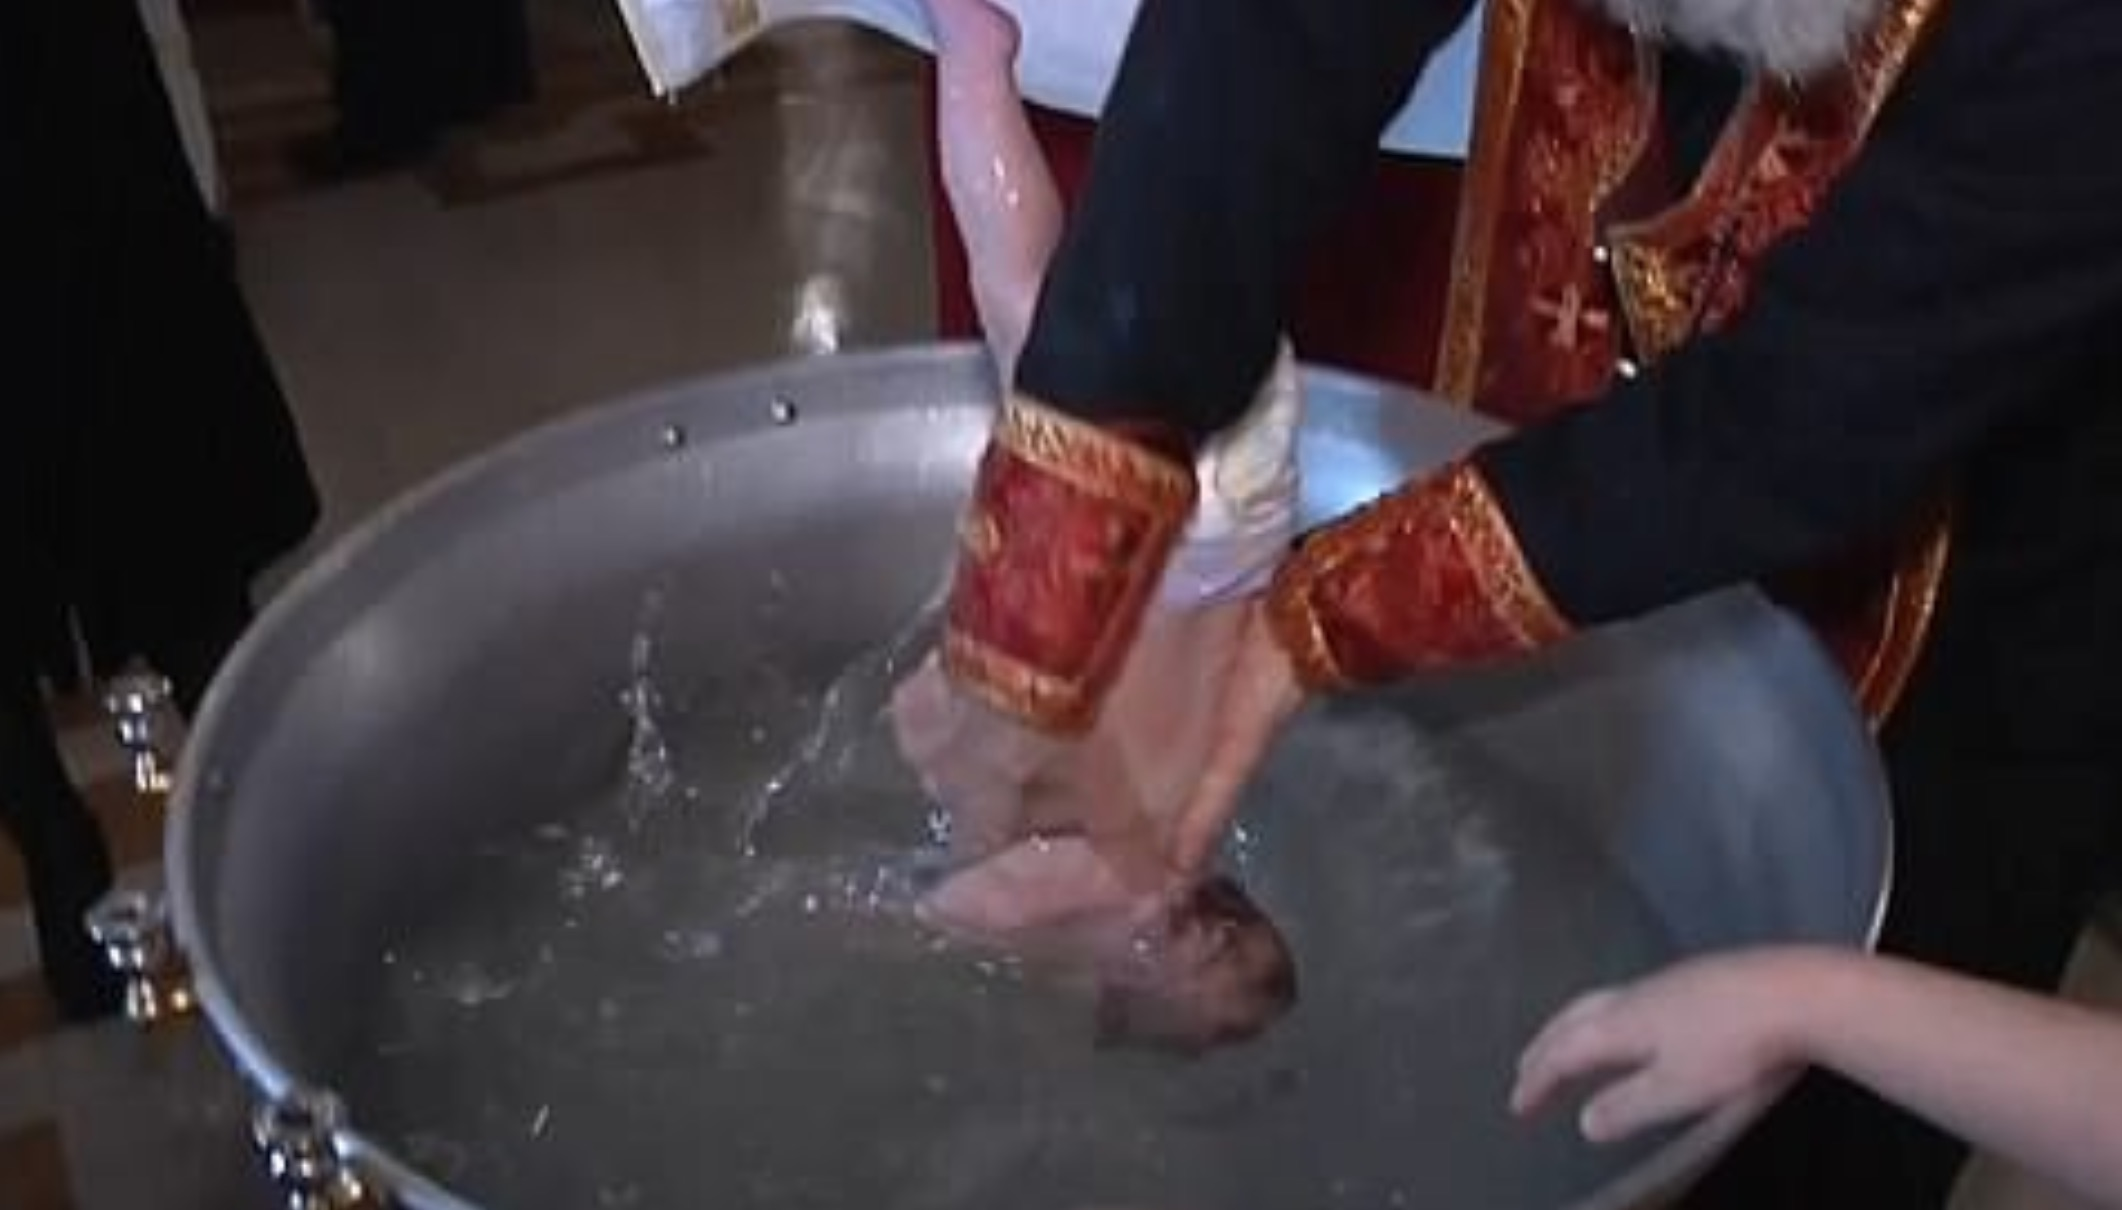 When The Bishop Started His Baptism Routine Everyone In The Church Held Their Breath